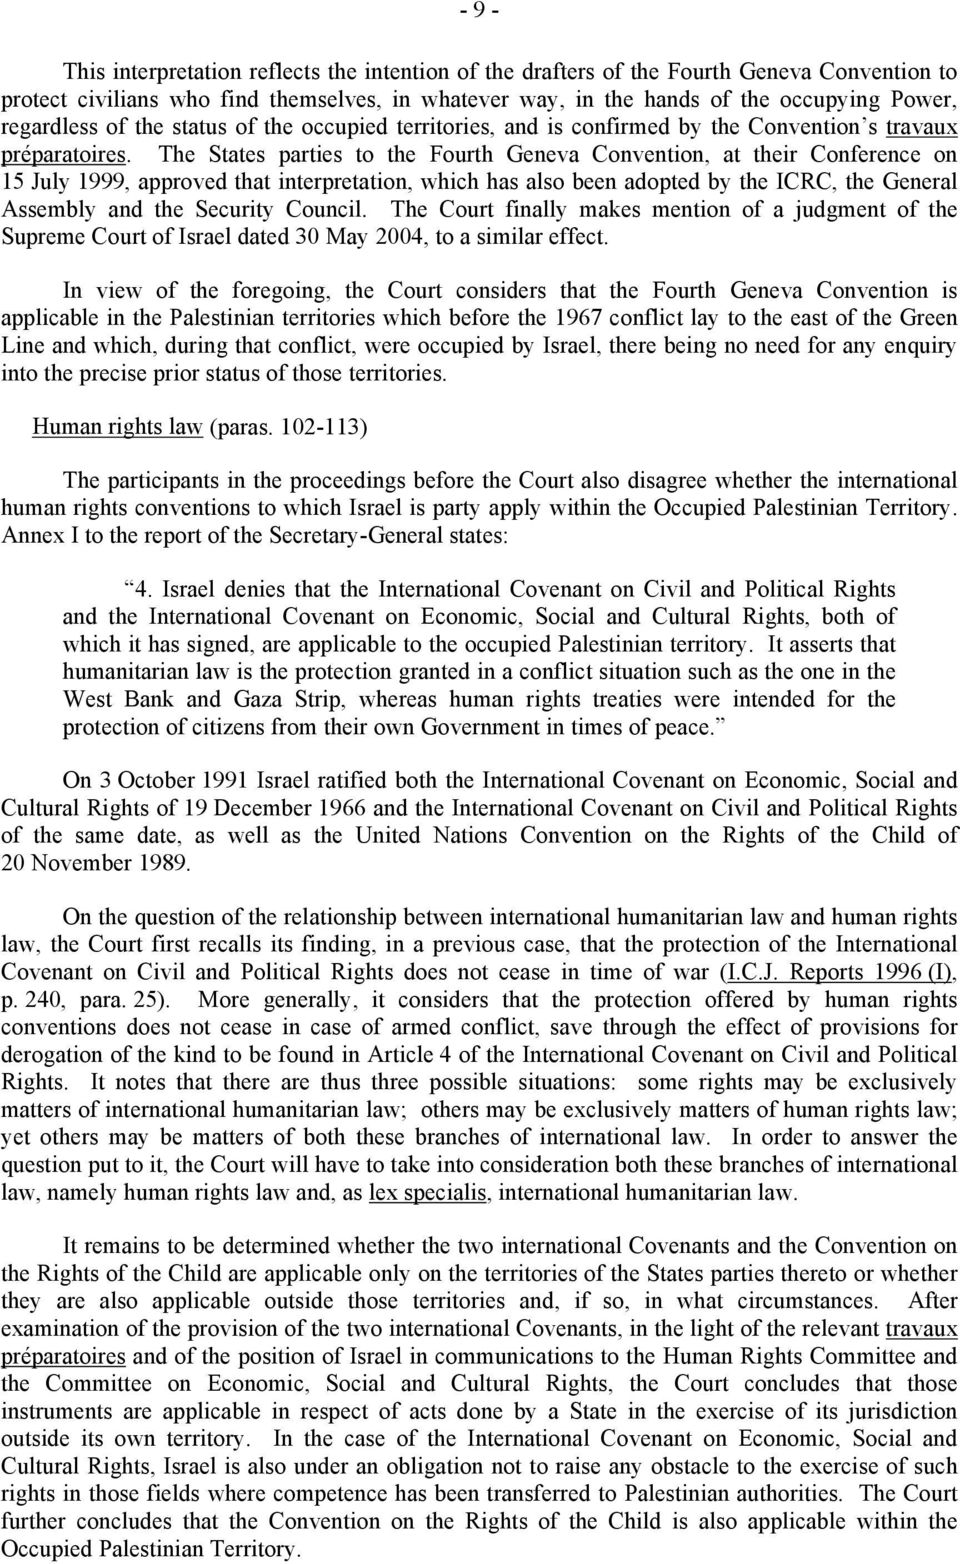 The States parties to the Fourth Geneva Convention, at their Conference on 15 July 1999, approved that interpretation, which has also been adopted by the ICRC, the General Assembly and the Security